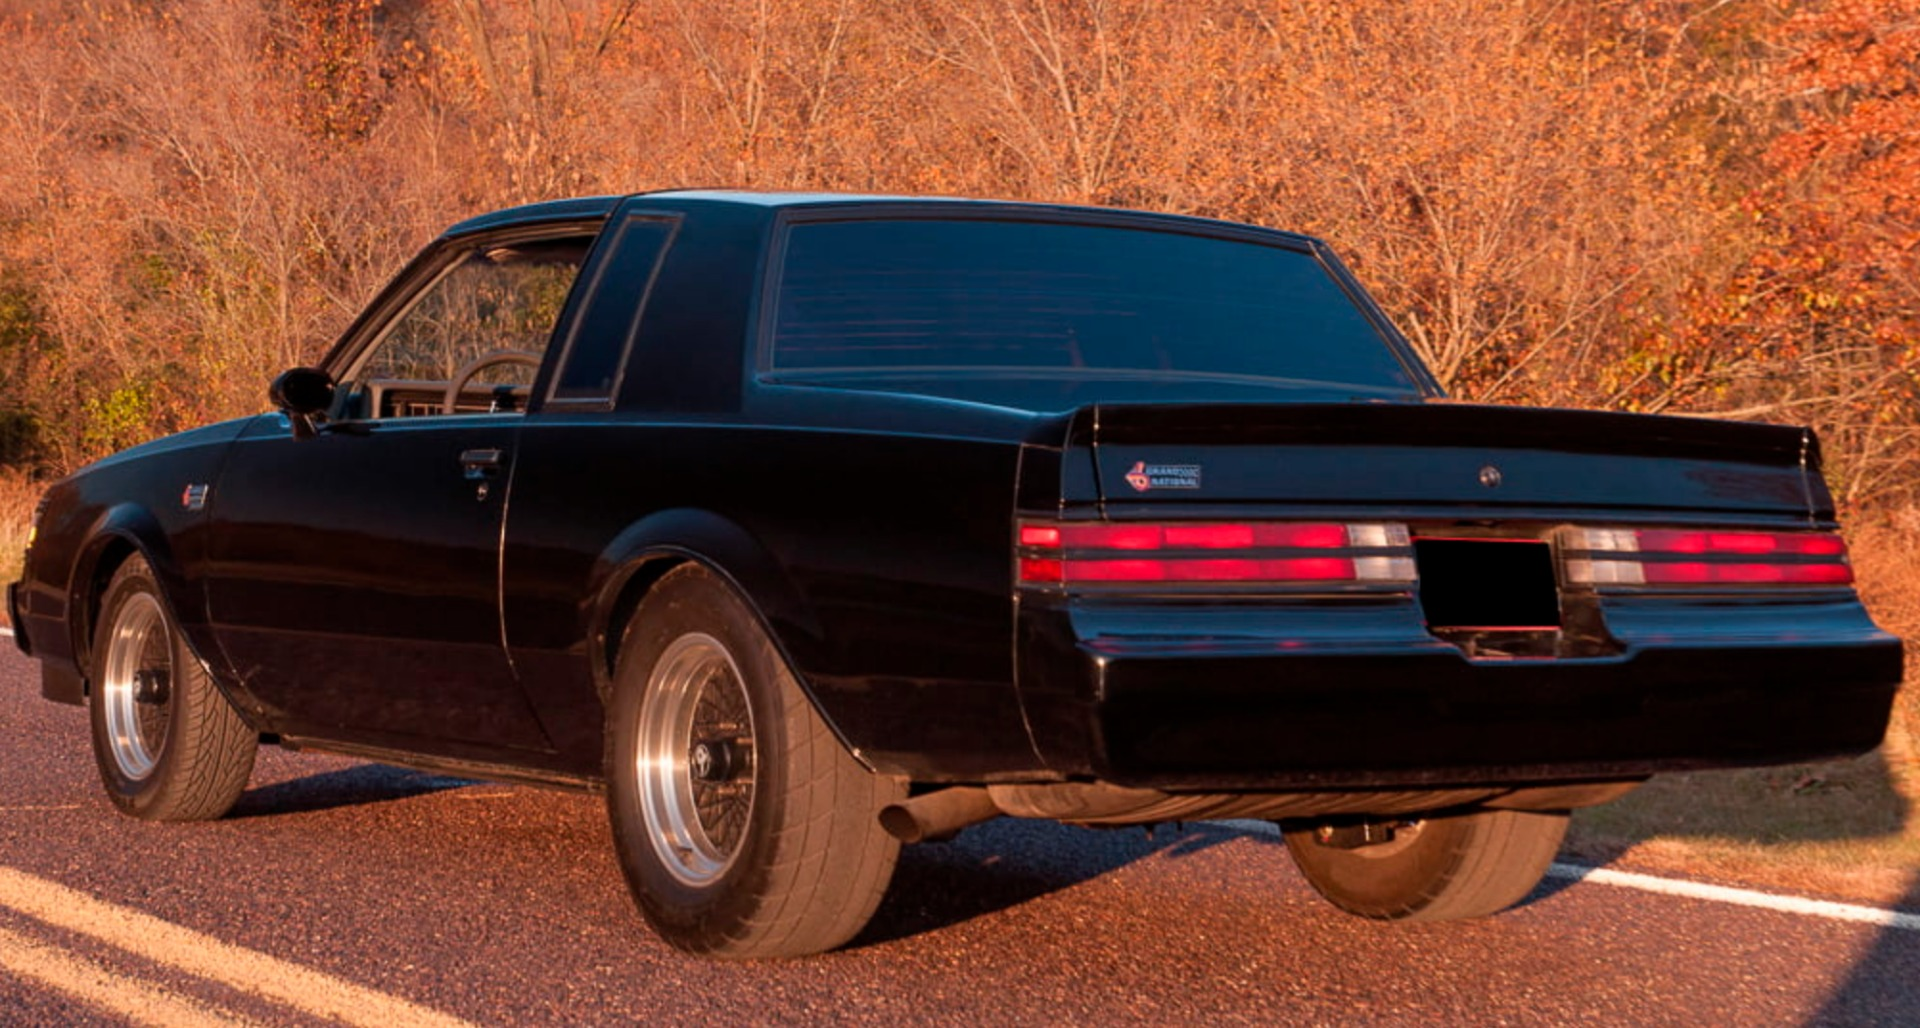 Used 1987 Buick Grand National -LOW MILES-T TOPS-2 OWNER-NICE PAINT-GNX WHEELS- | Mundelein, IL